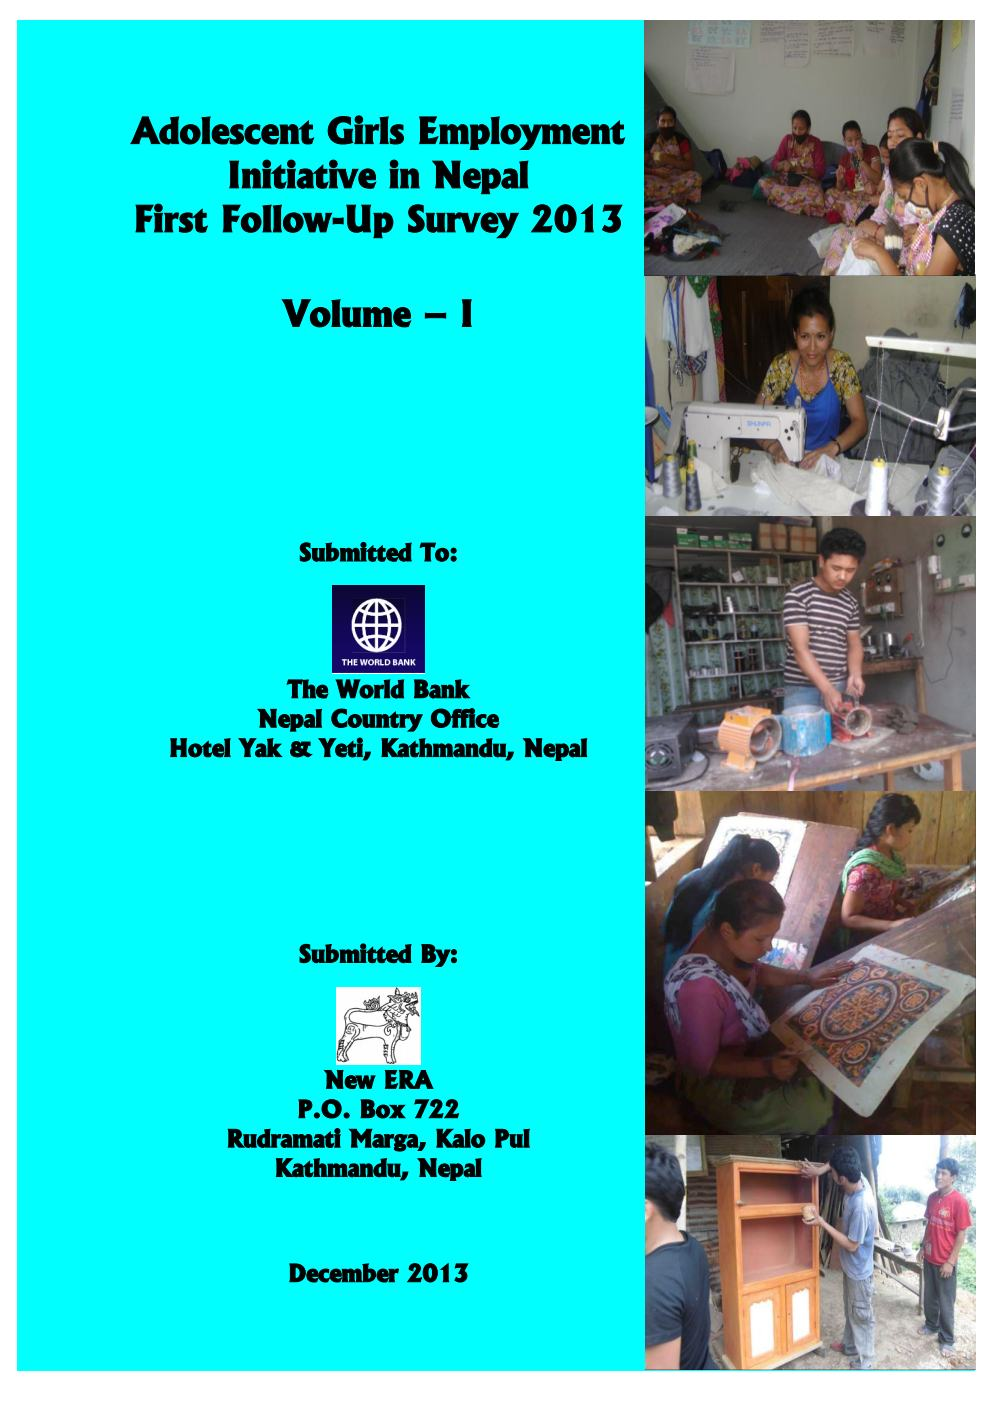 Adolescent Girls Employment Initiative in Nepal – First Follow Up Survey 2013